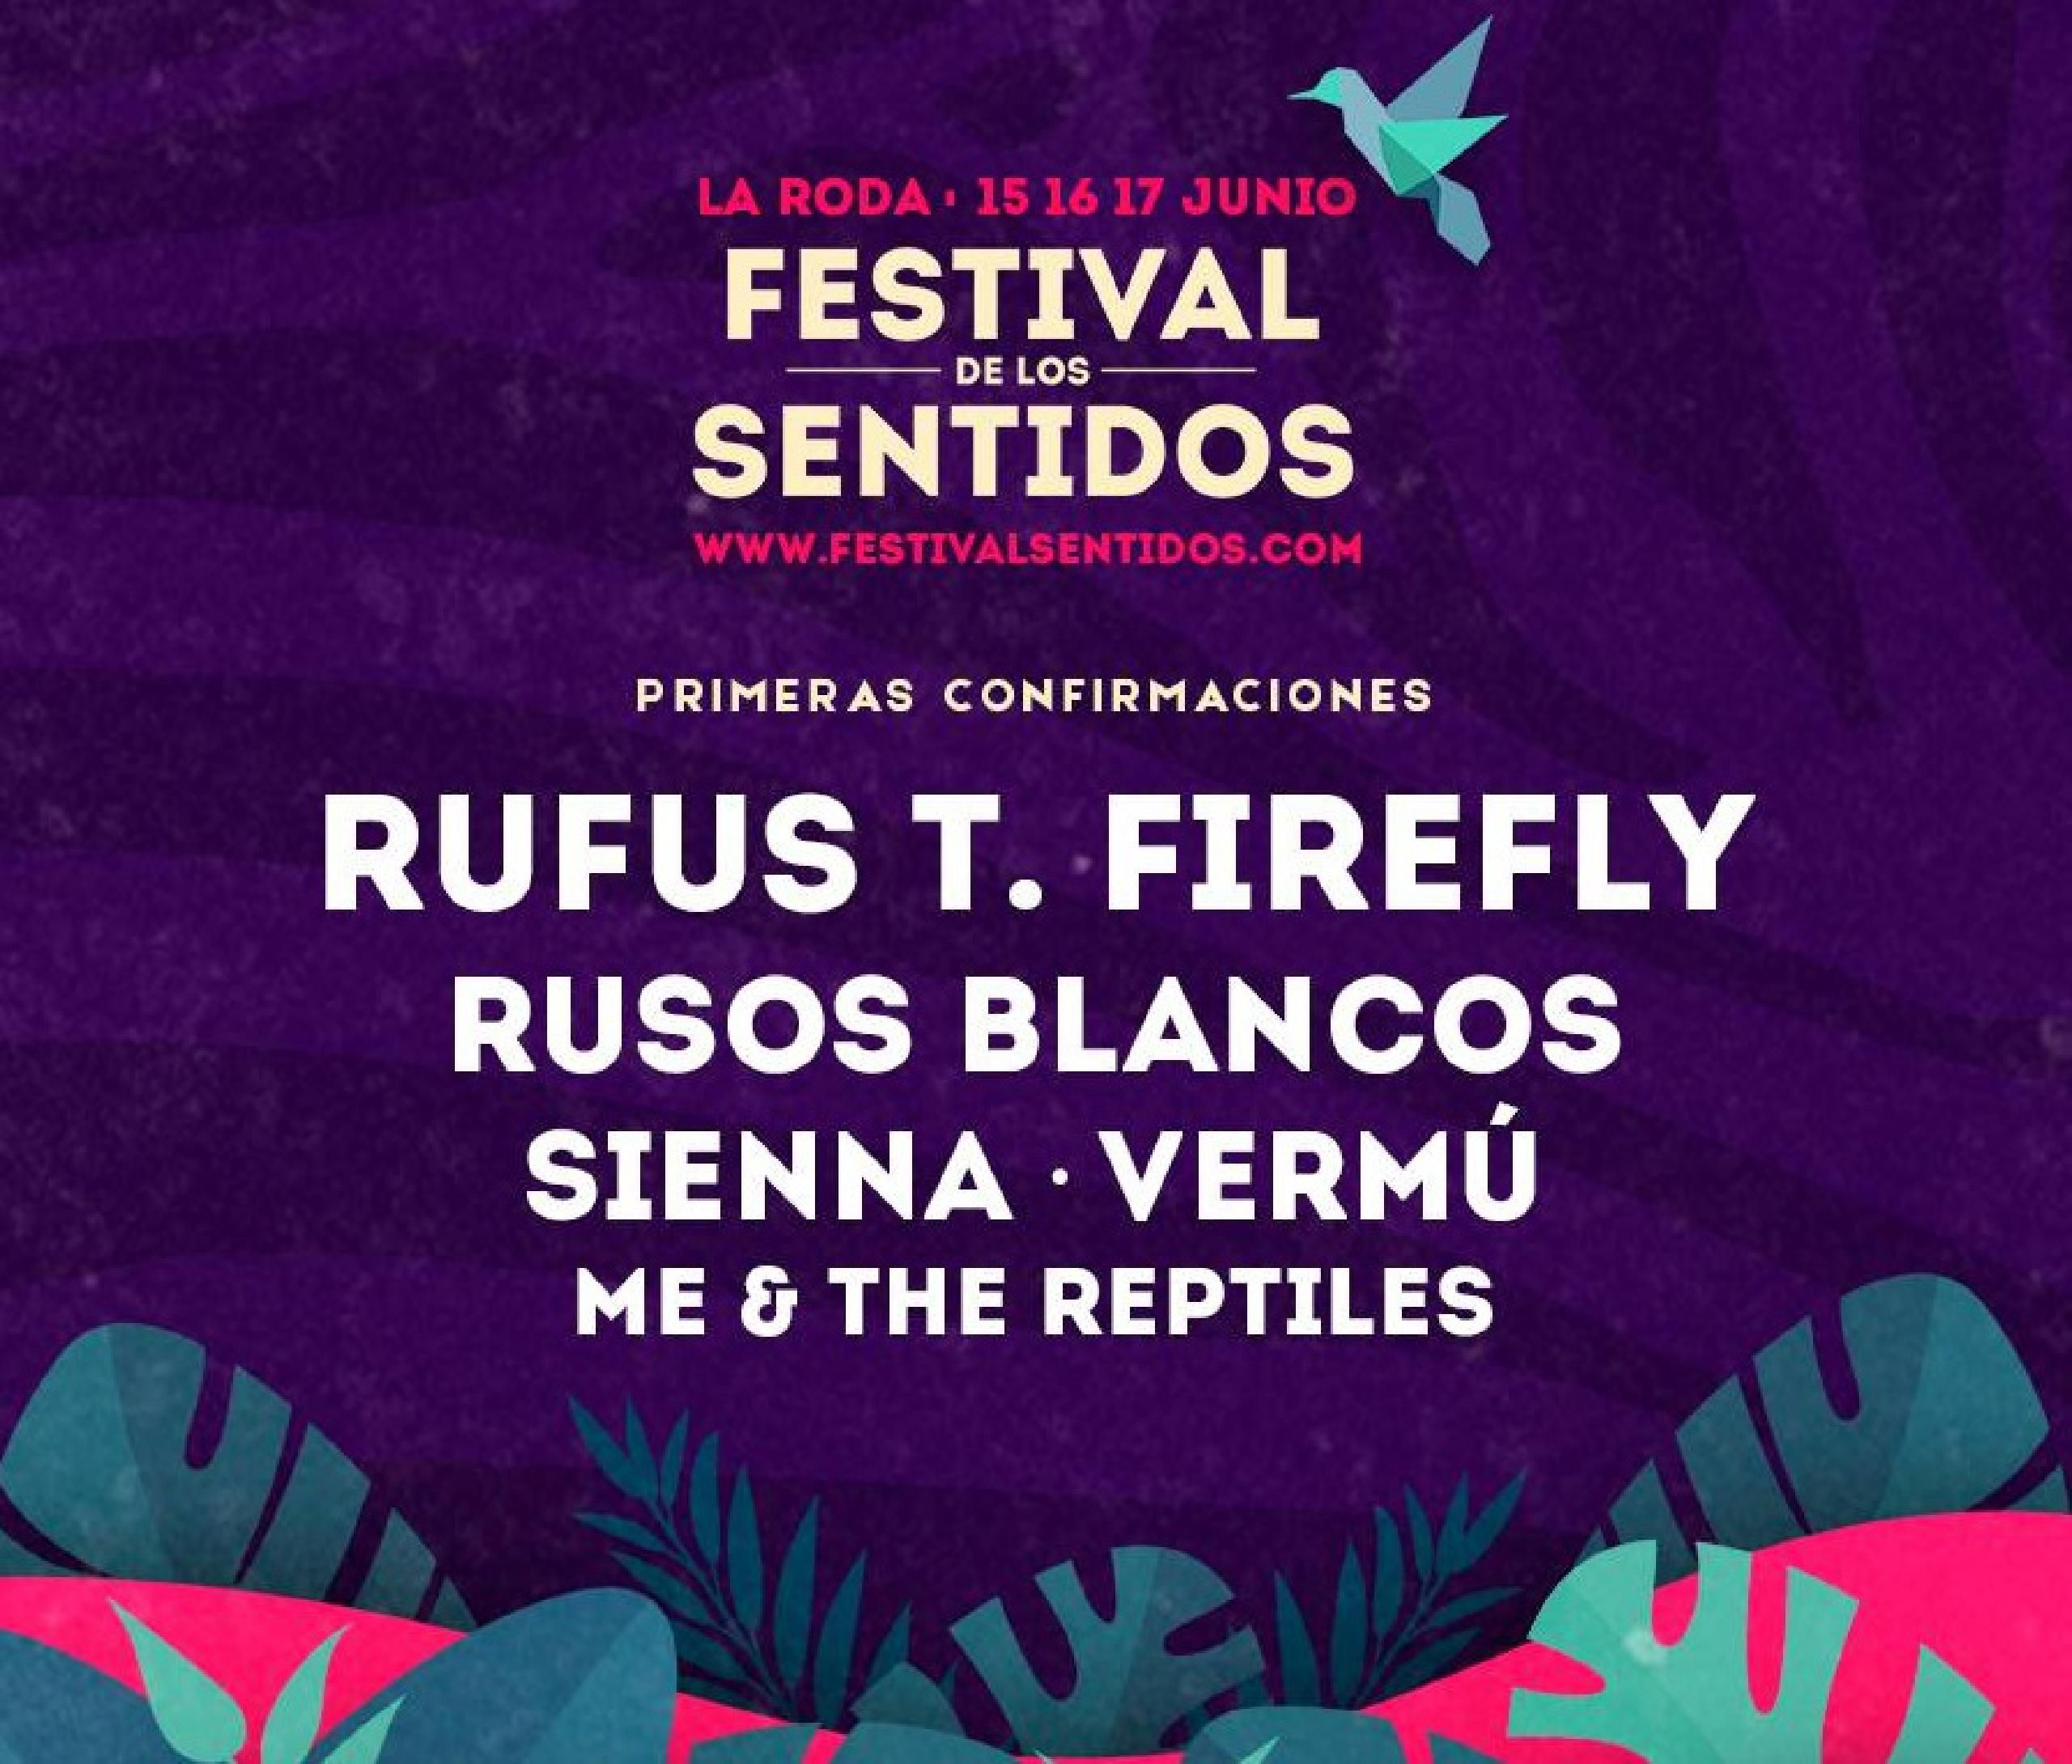 Festival de los Sentidos 2018. Tickets, lineup, bands for Festival ...